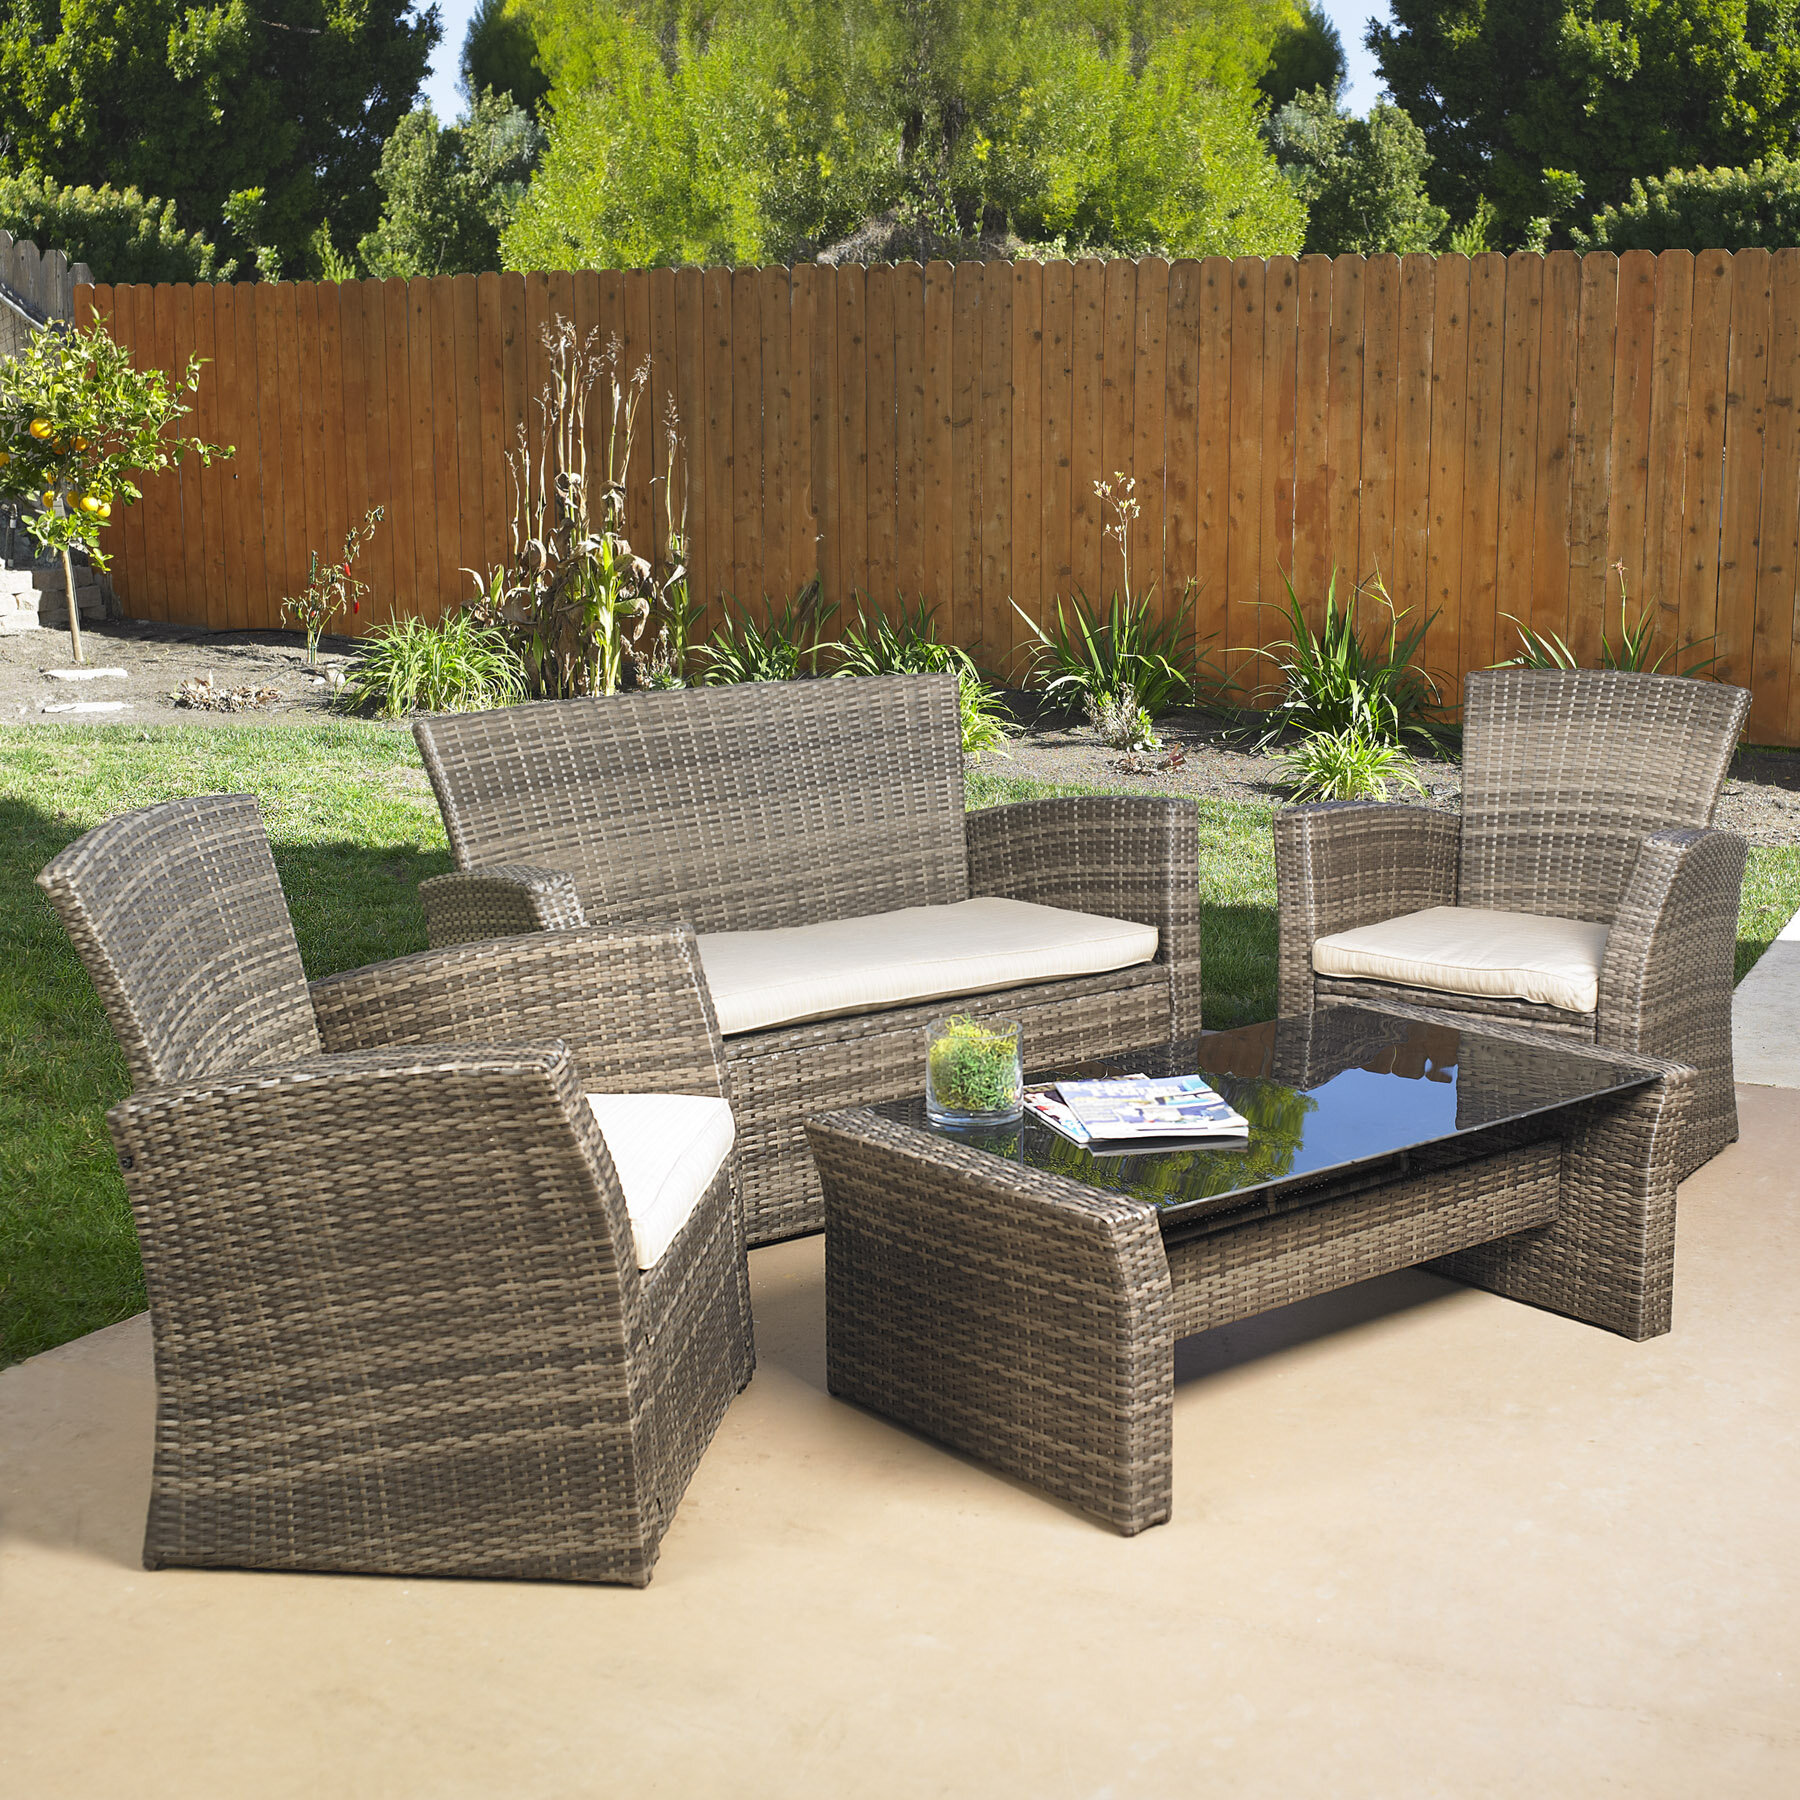 Delicieux Mission Hills Redondo 4 Piece Sofa Set With Cushions U0026 Reviews | Wayfair